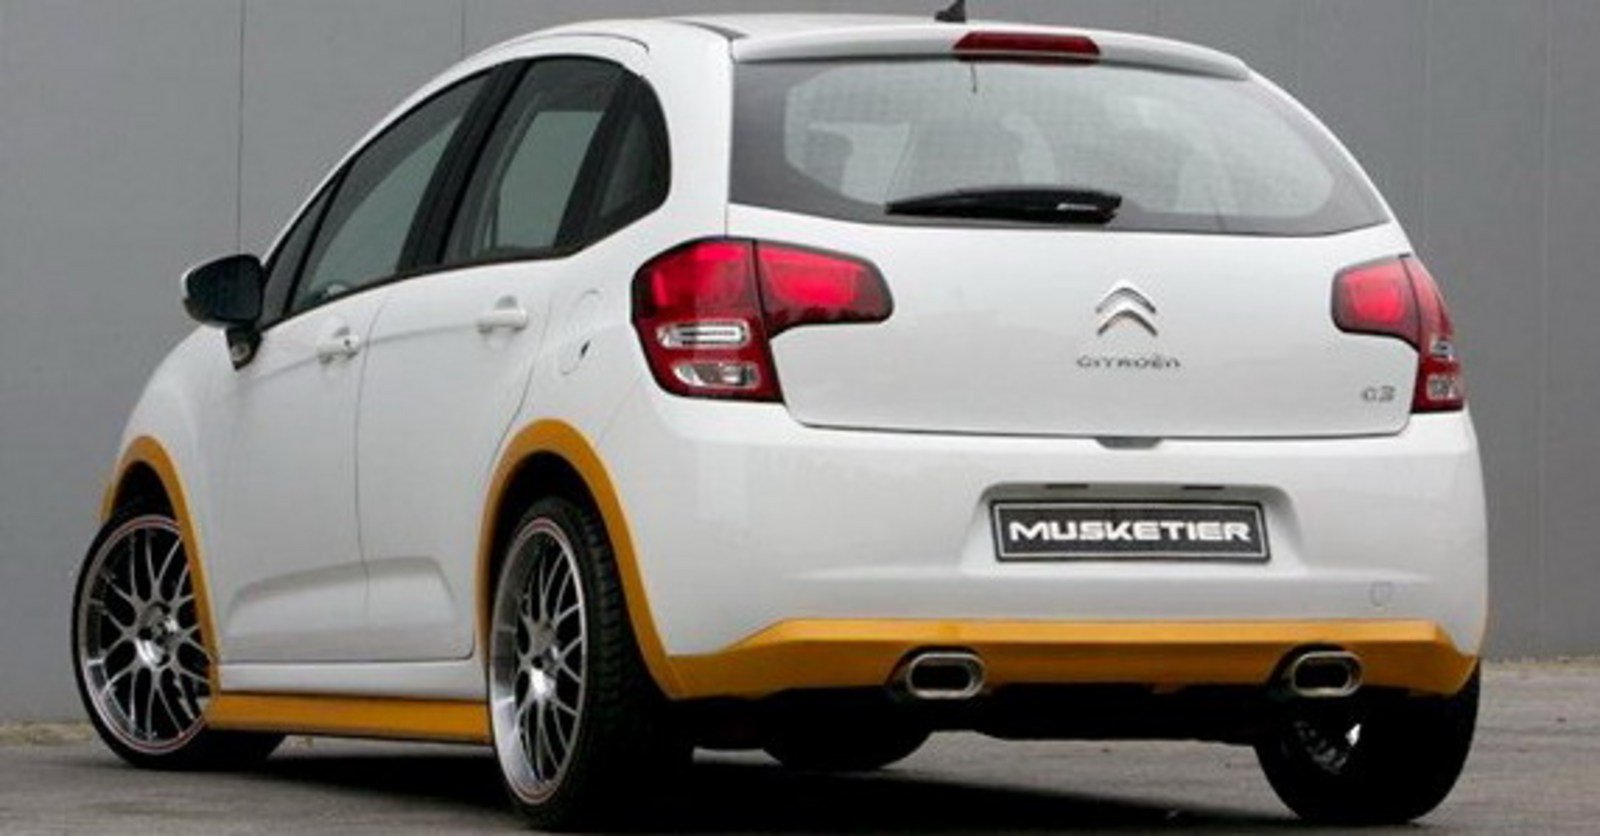 2011 Citroen C3 By Musketier Review Top Speed